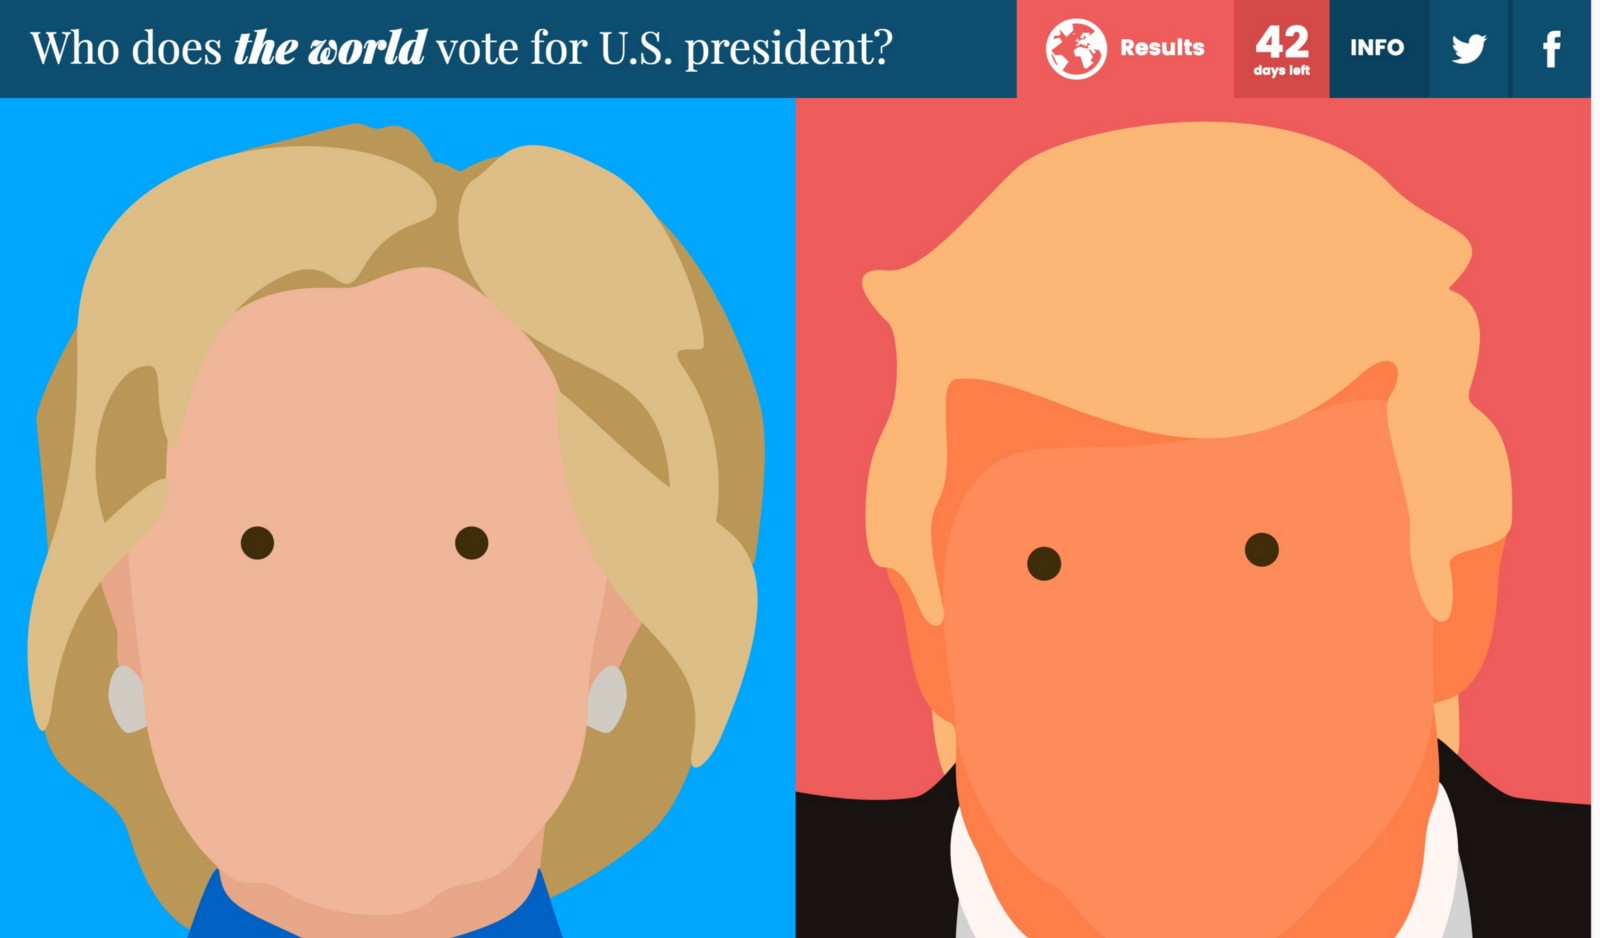 Who does the world vote for U.S. president? project